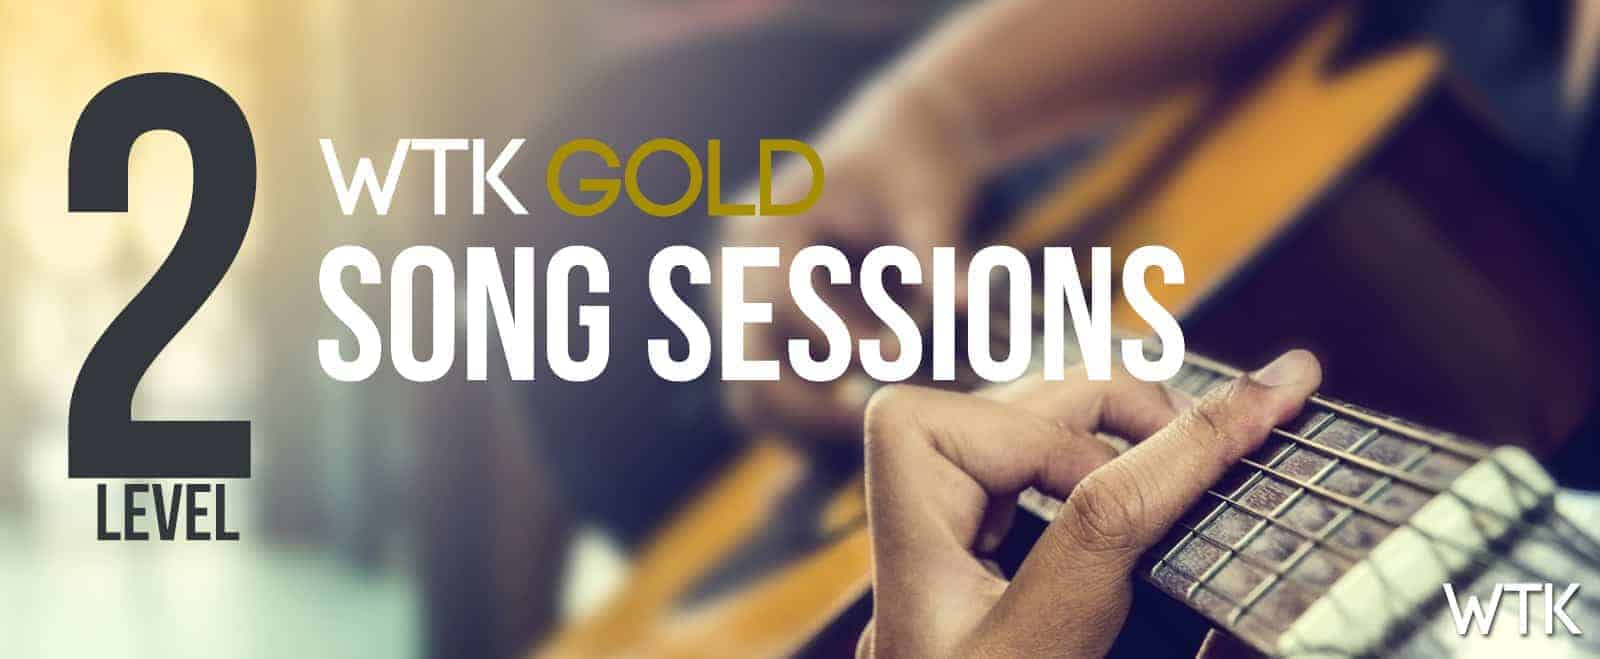 WTK GOLD Song Sessions Level 2